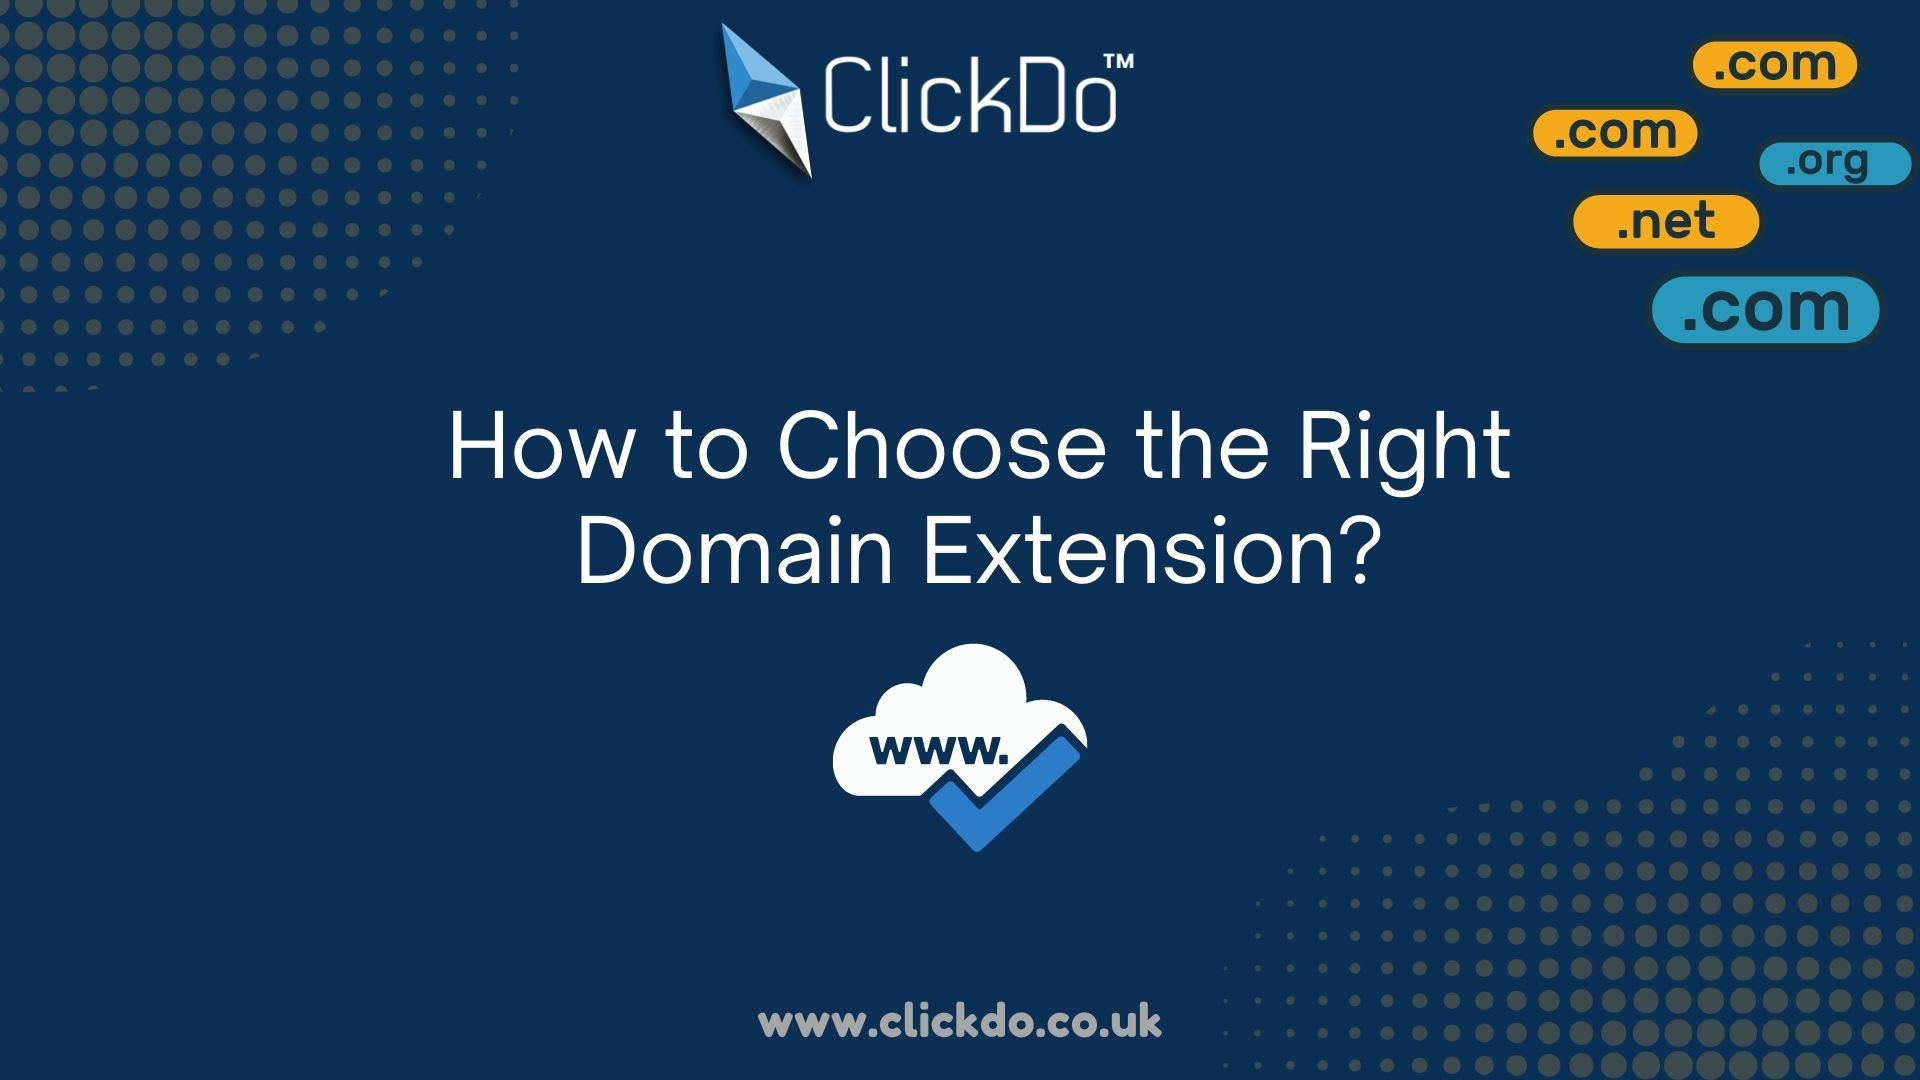 How to Choose the Right Domain Extension